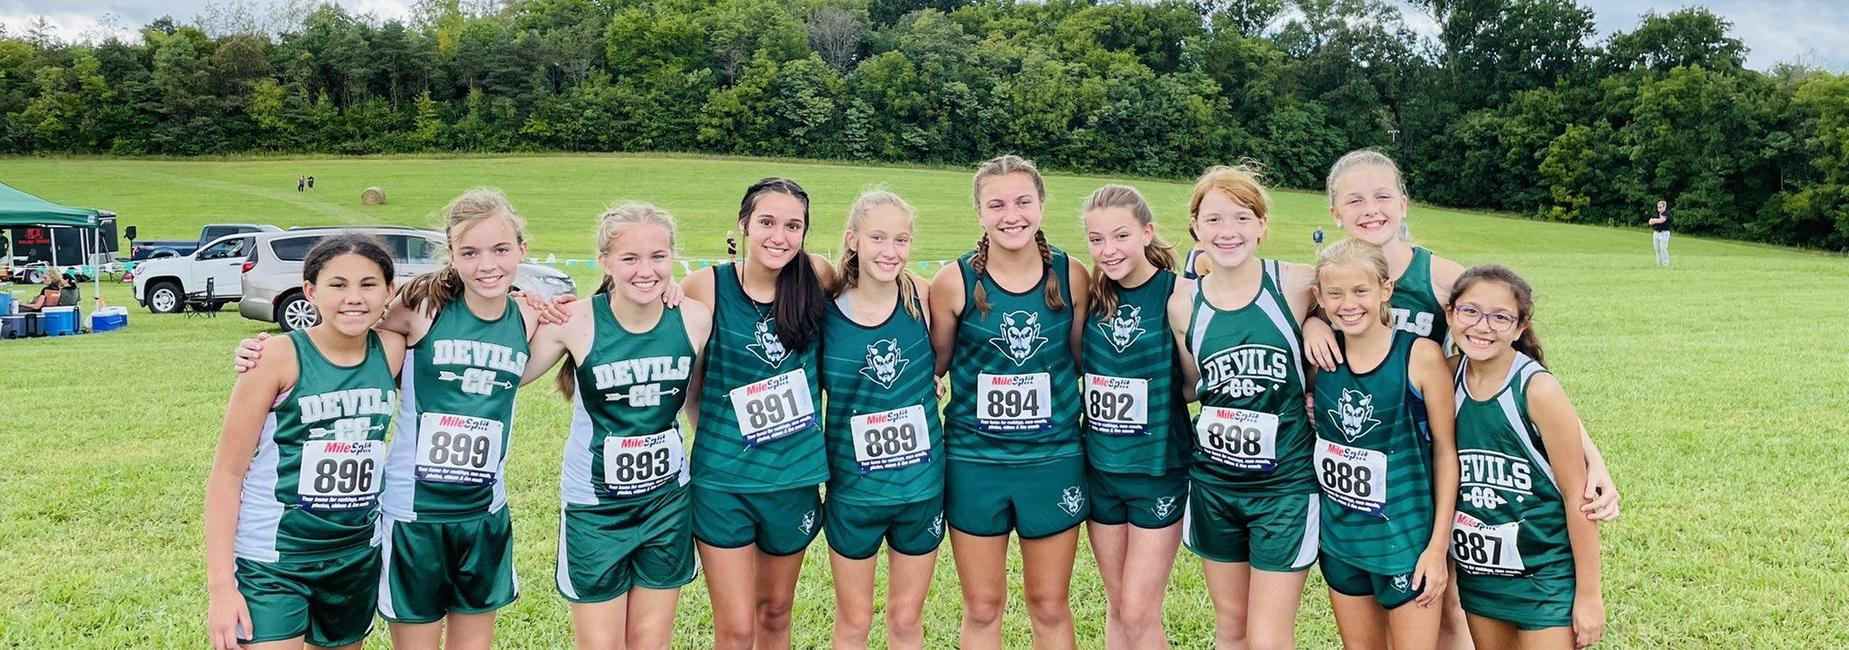 a picture of the GMS girls cross country team